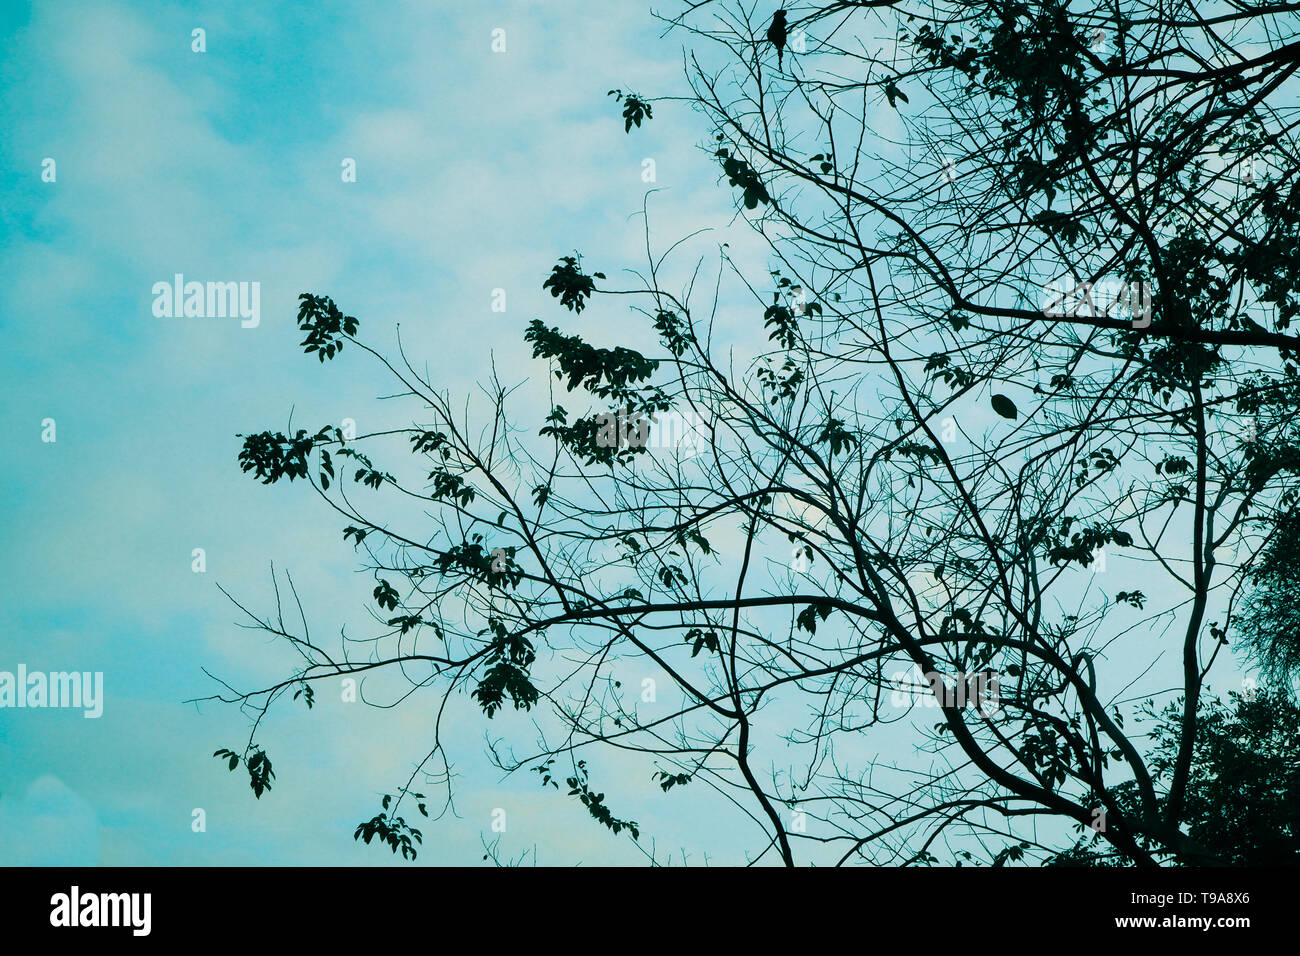 fallen leaves tree lonliness feeling with blue nature sky in autumn season change background Stock Photo